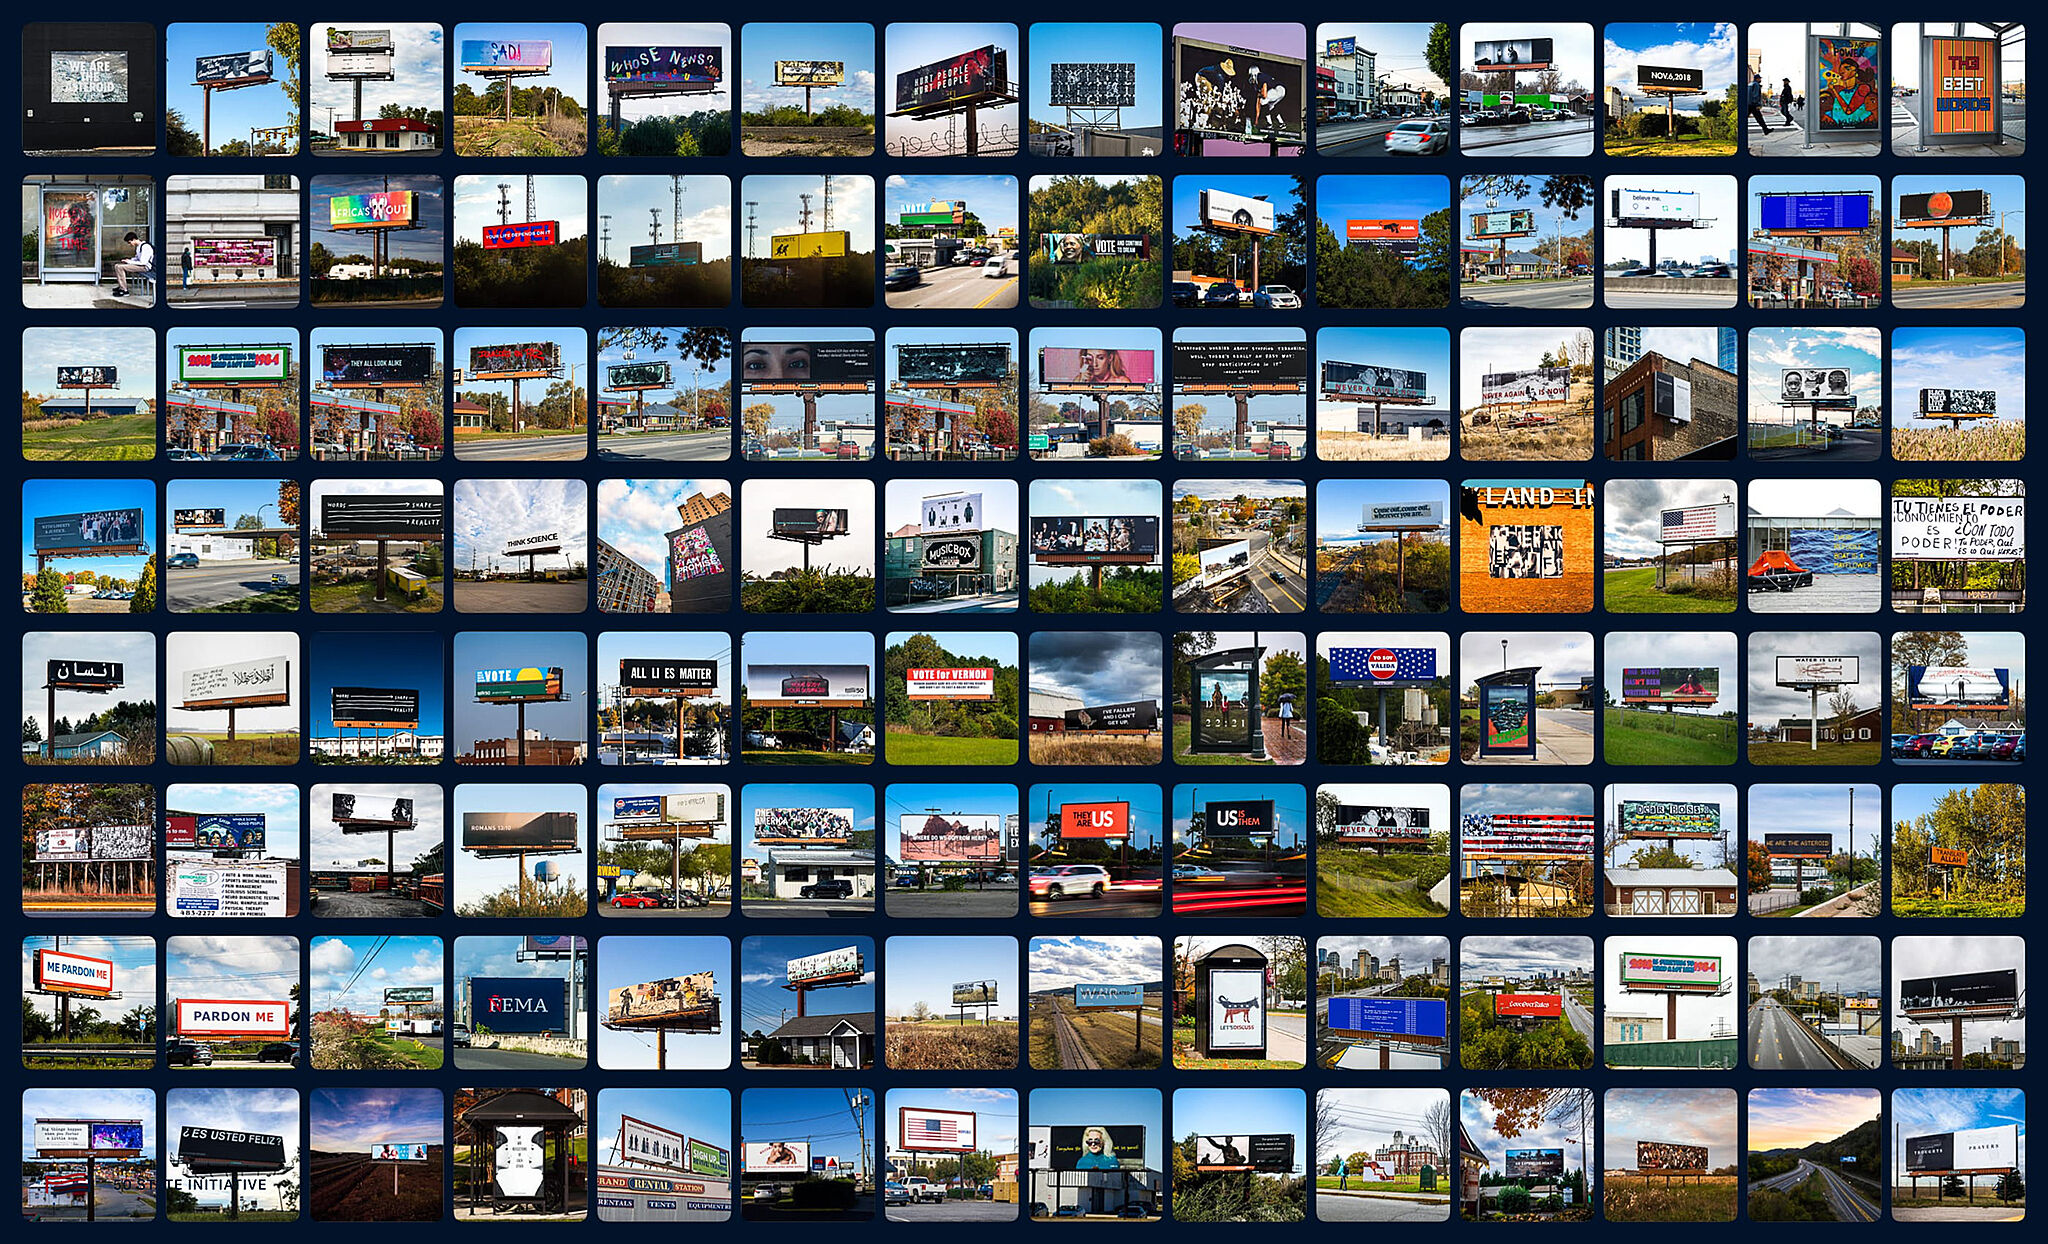 A 14 by 8 grid of images depicting various billboards.